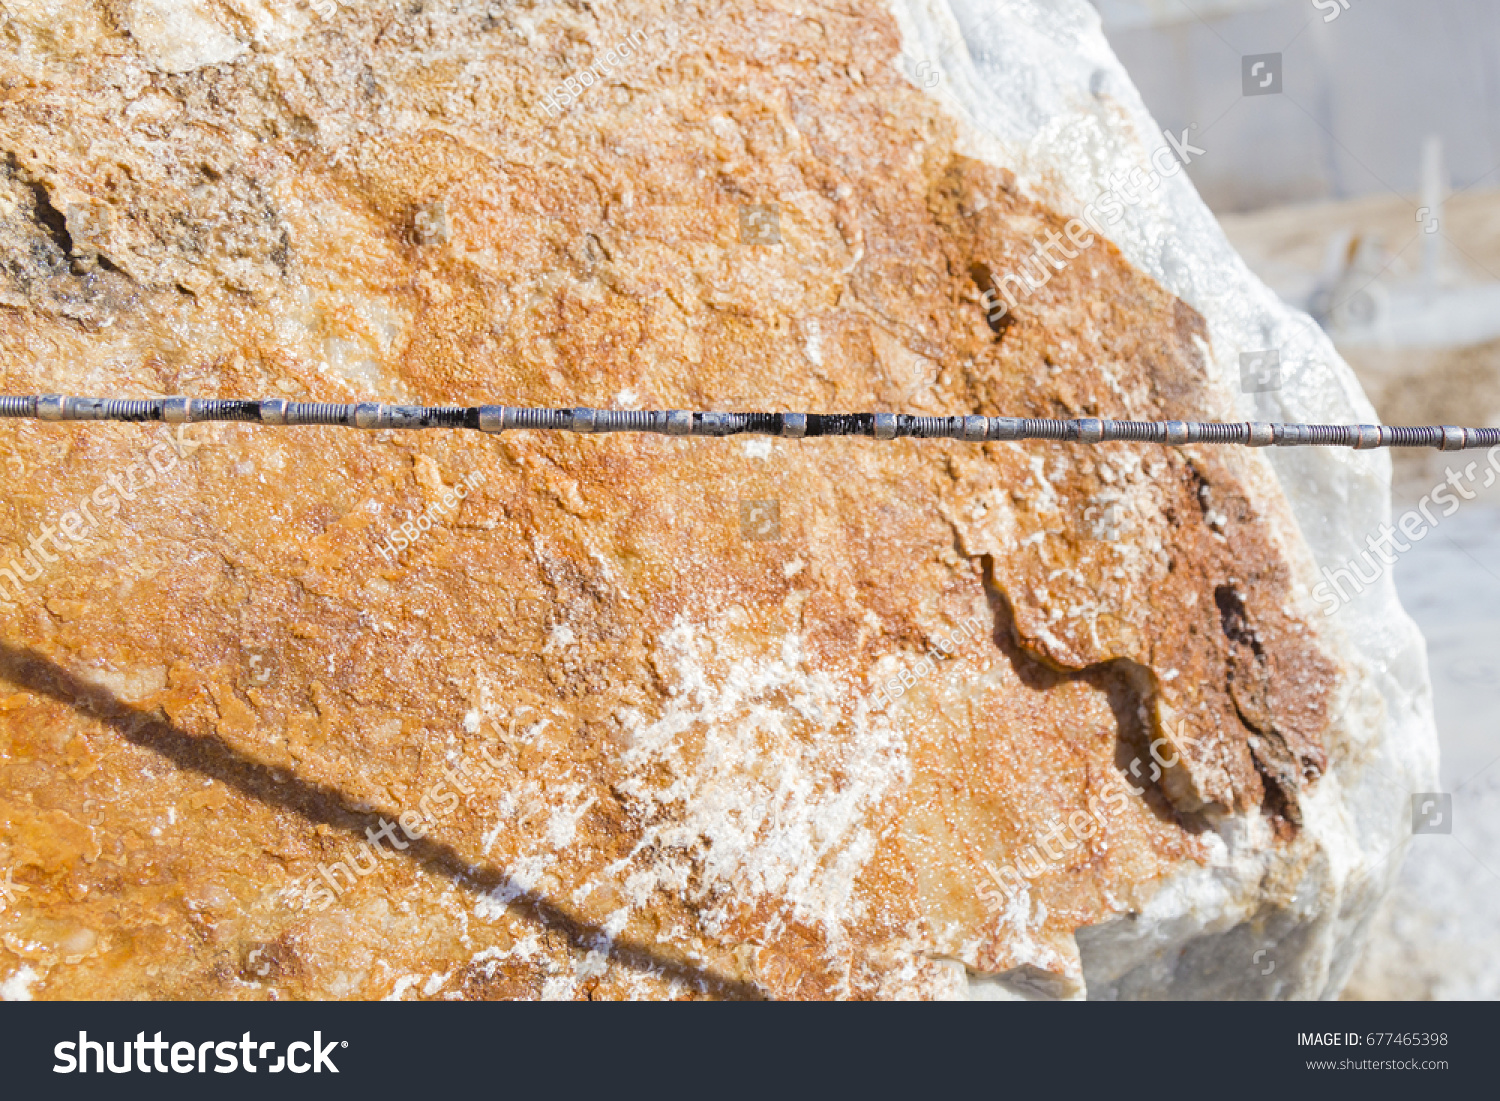 Diamond Wire Saw Marble Quarry Mostly Stock Photo (Safe to Use ...